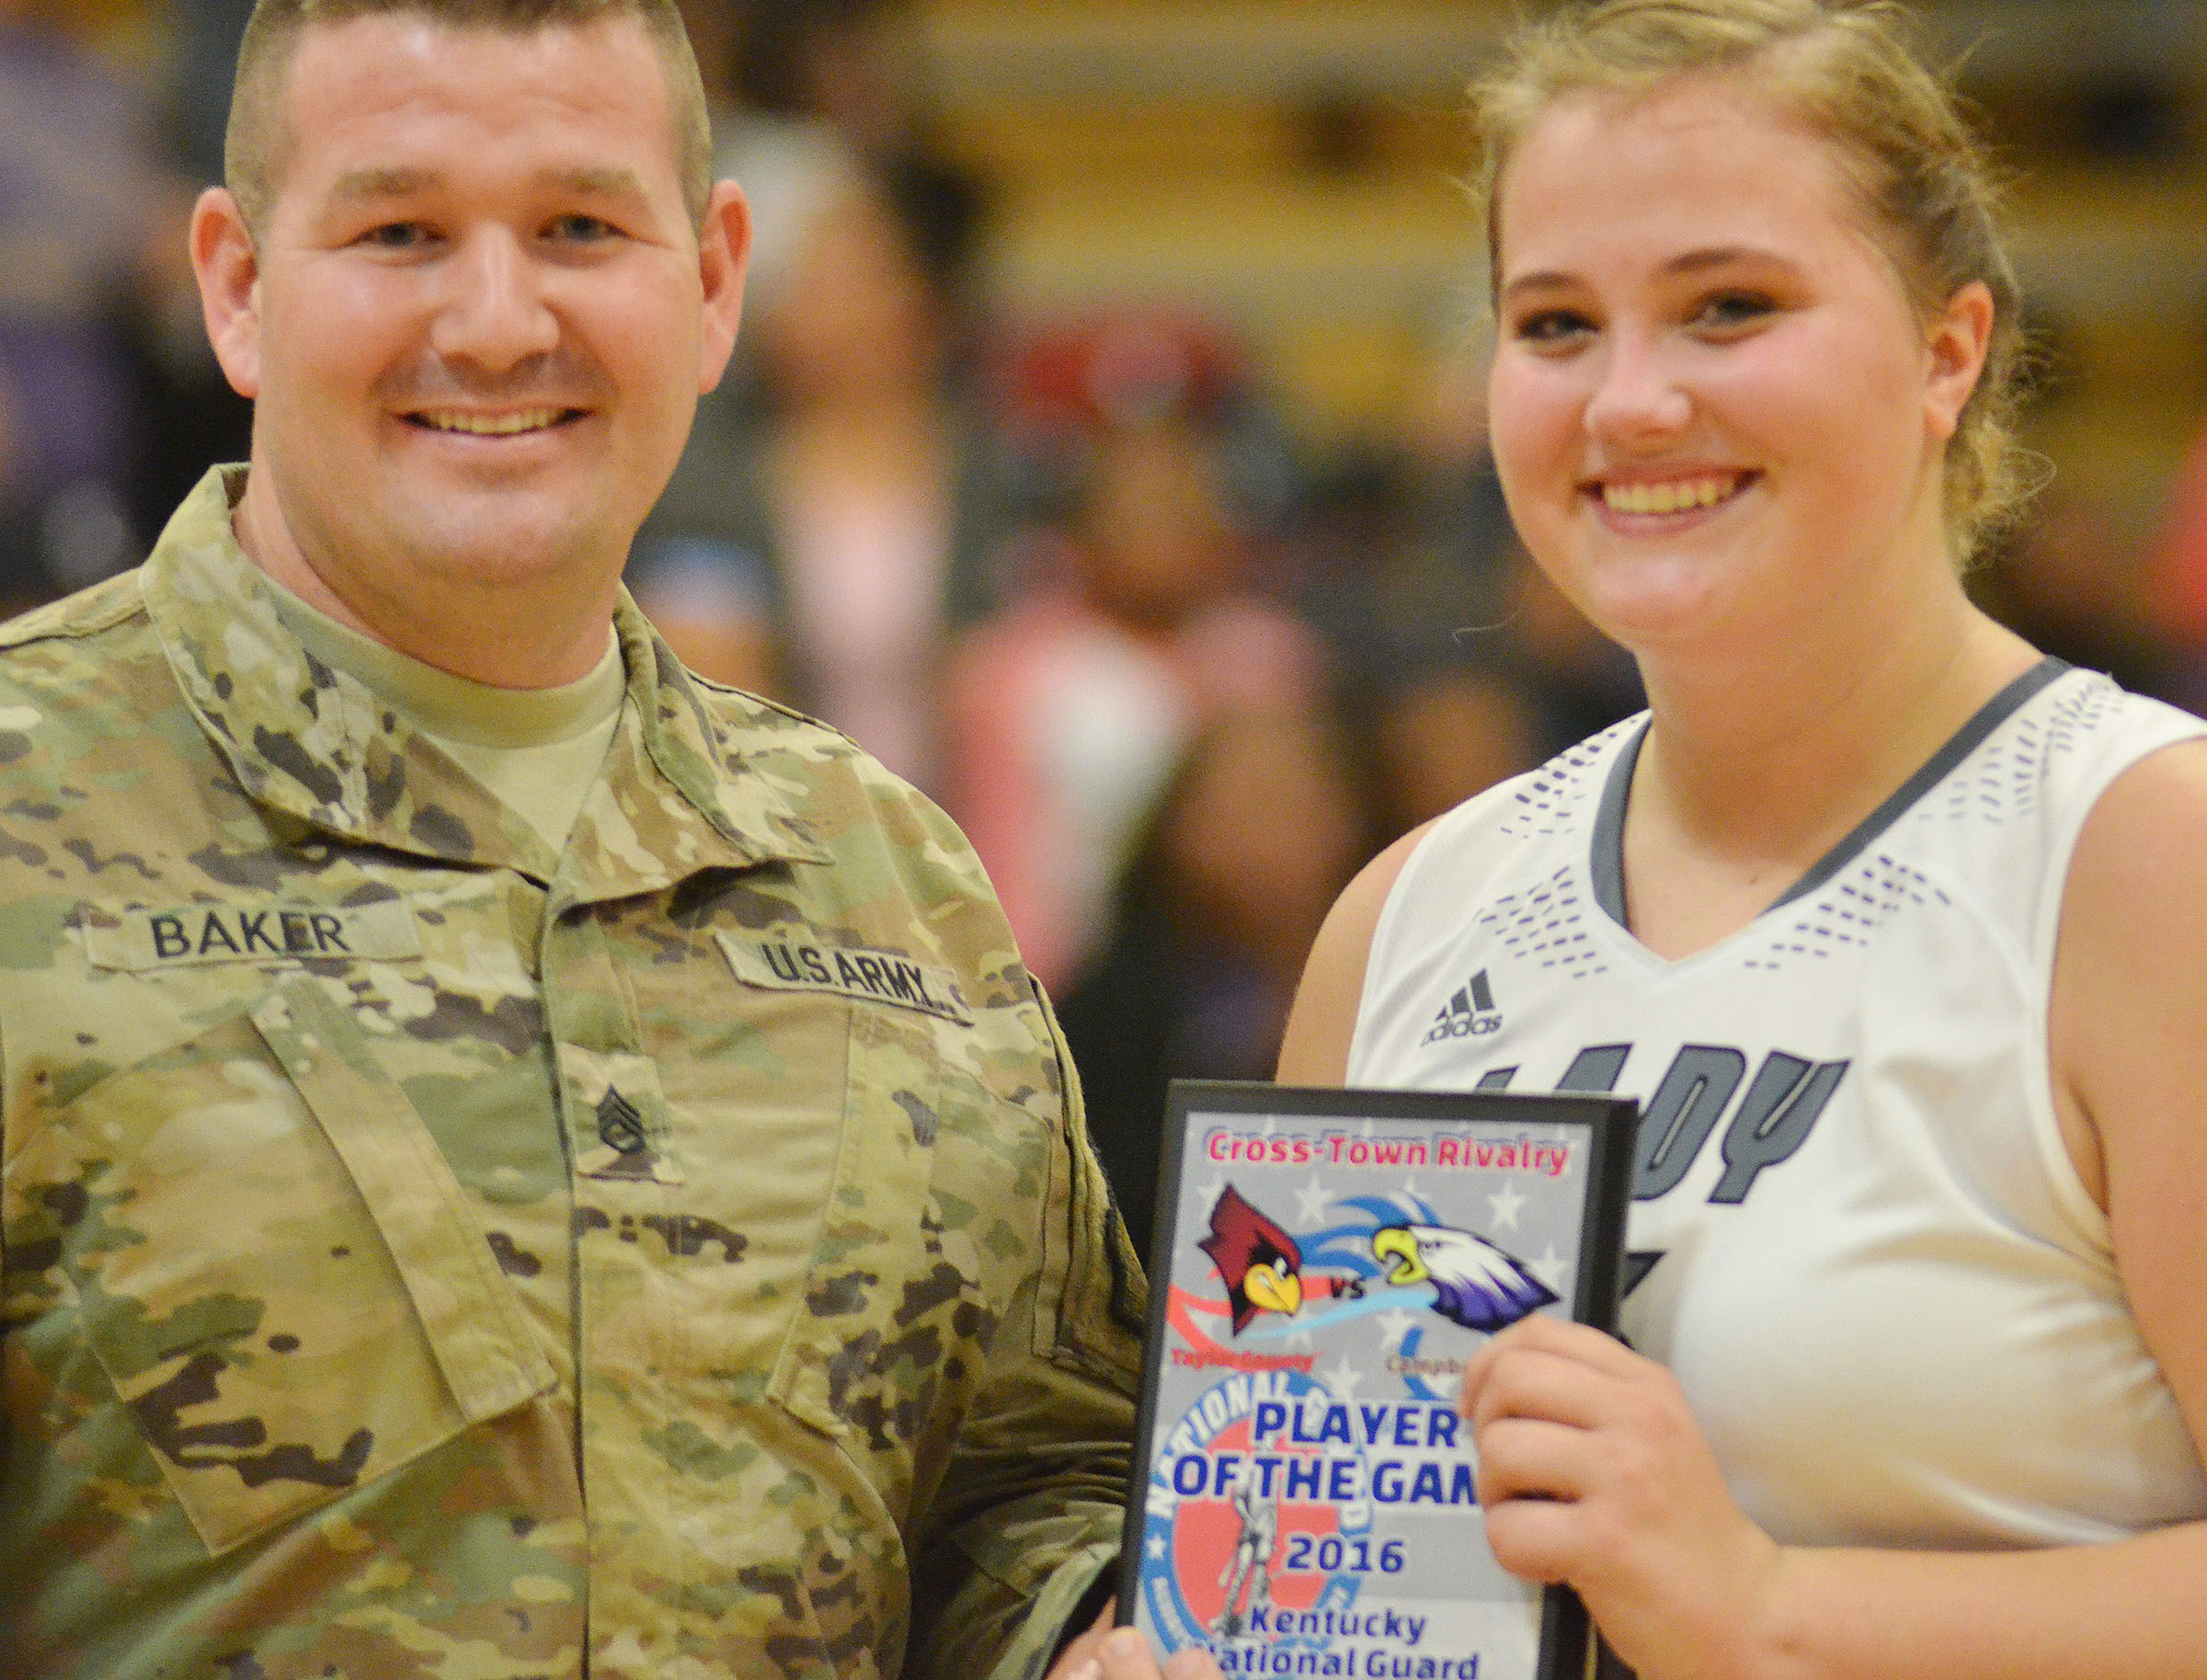 CHS senior Brenna Wethington receives the Player of the Game award from Army National Guard Sgt. Phillip Baker.